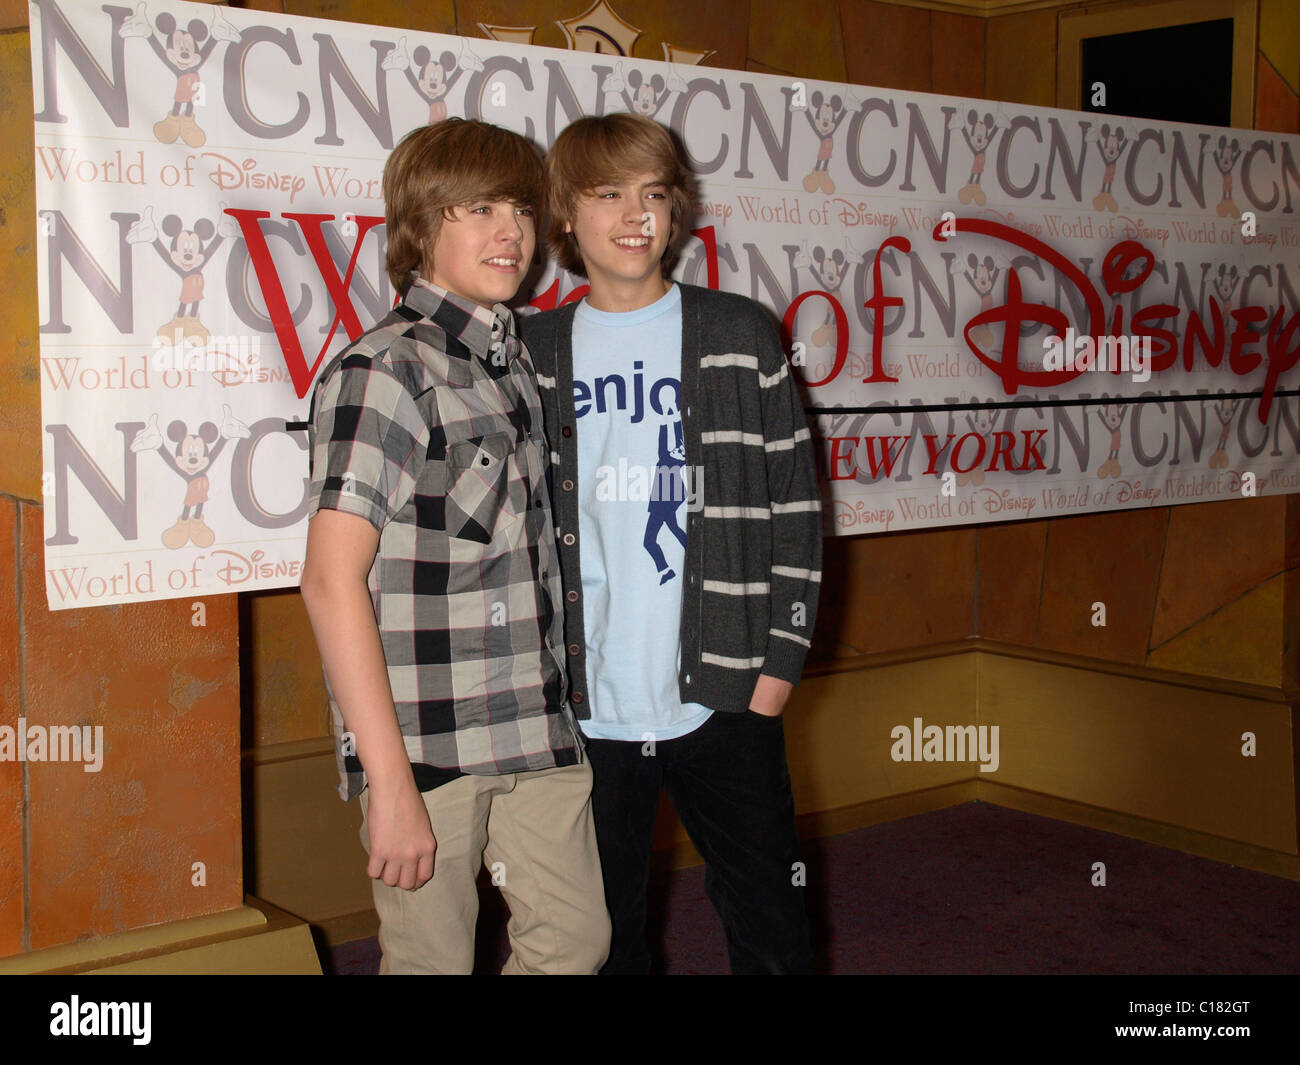 Dylan sprouse and cole sprouse the cast of the suite life on deck dylan sprouse and cole sprouse the cast of the suite life on deck meet fans at the world of disneys store new york city usa kristyandbryce Choice Image